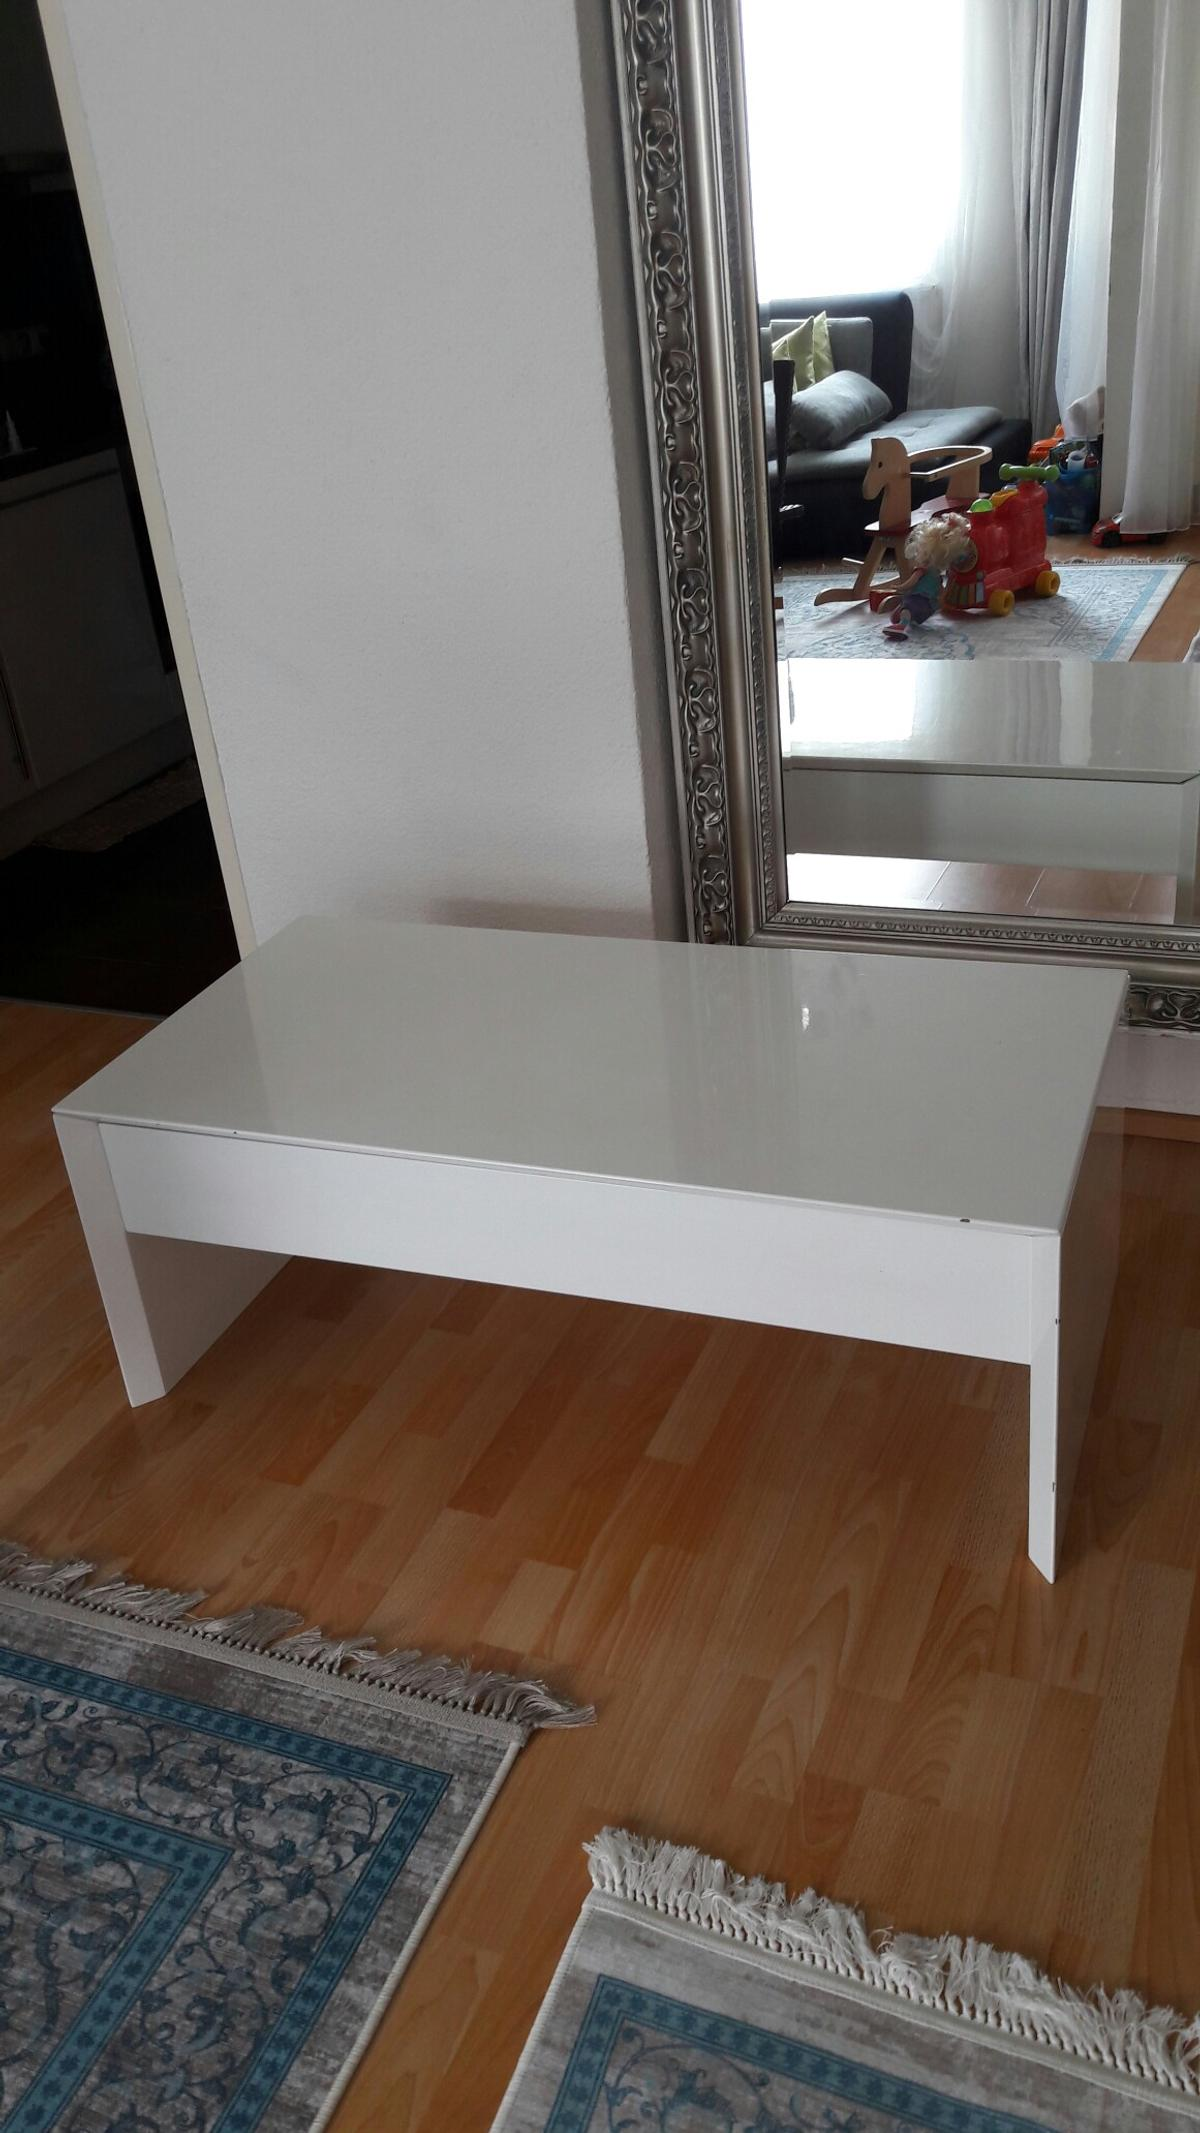 Couchtisch Klappbar In 6060 Hall In Tirol For 80 00 For Sale Shpock